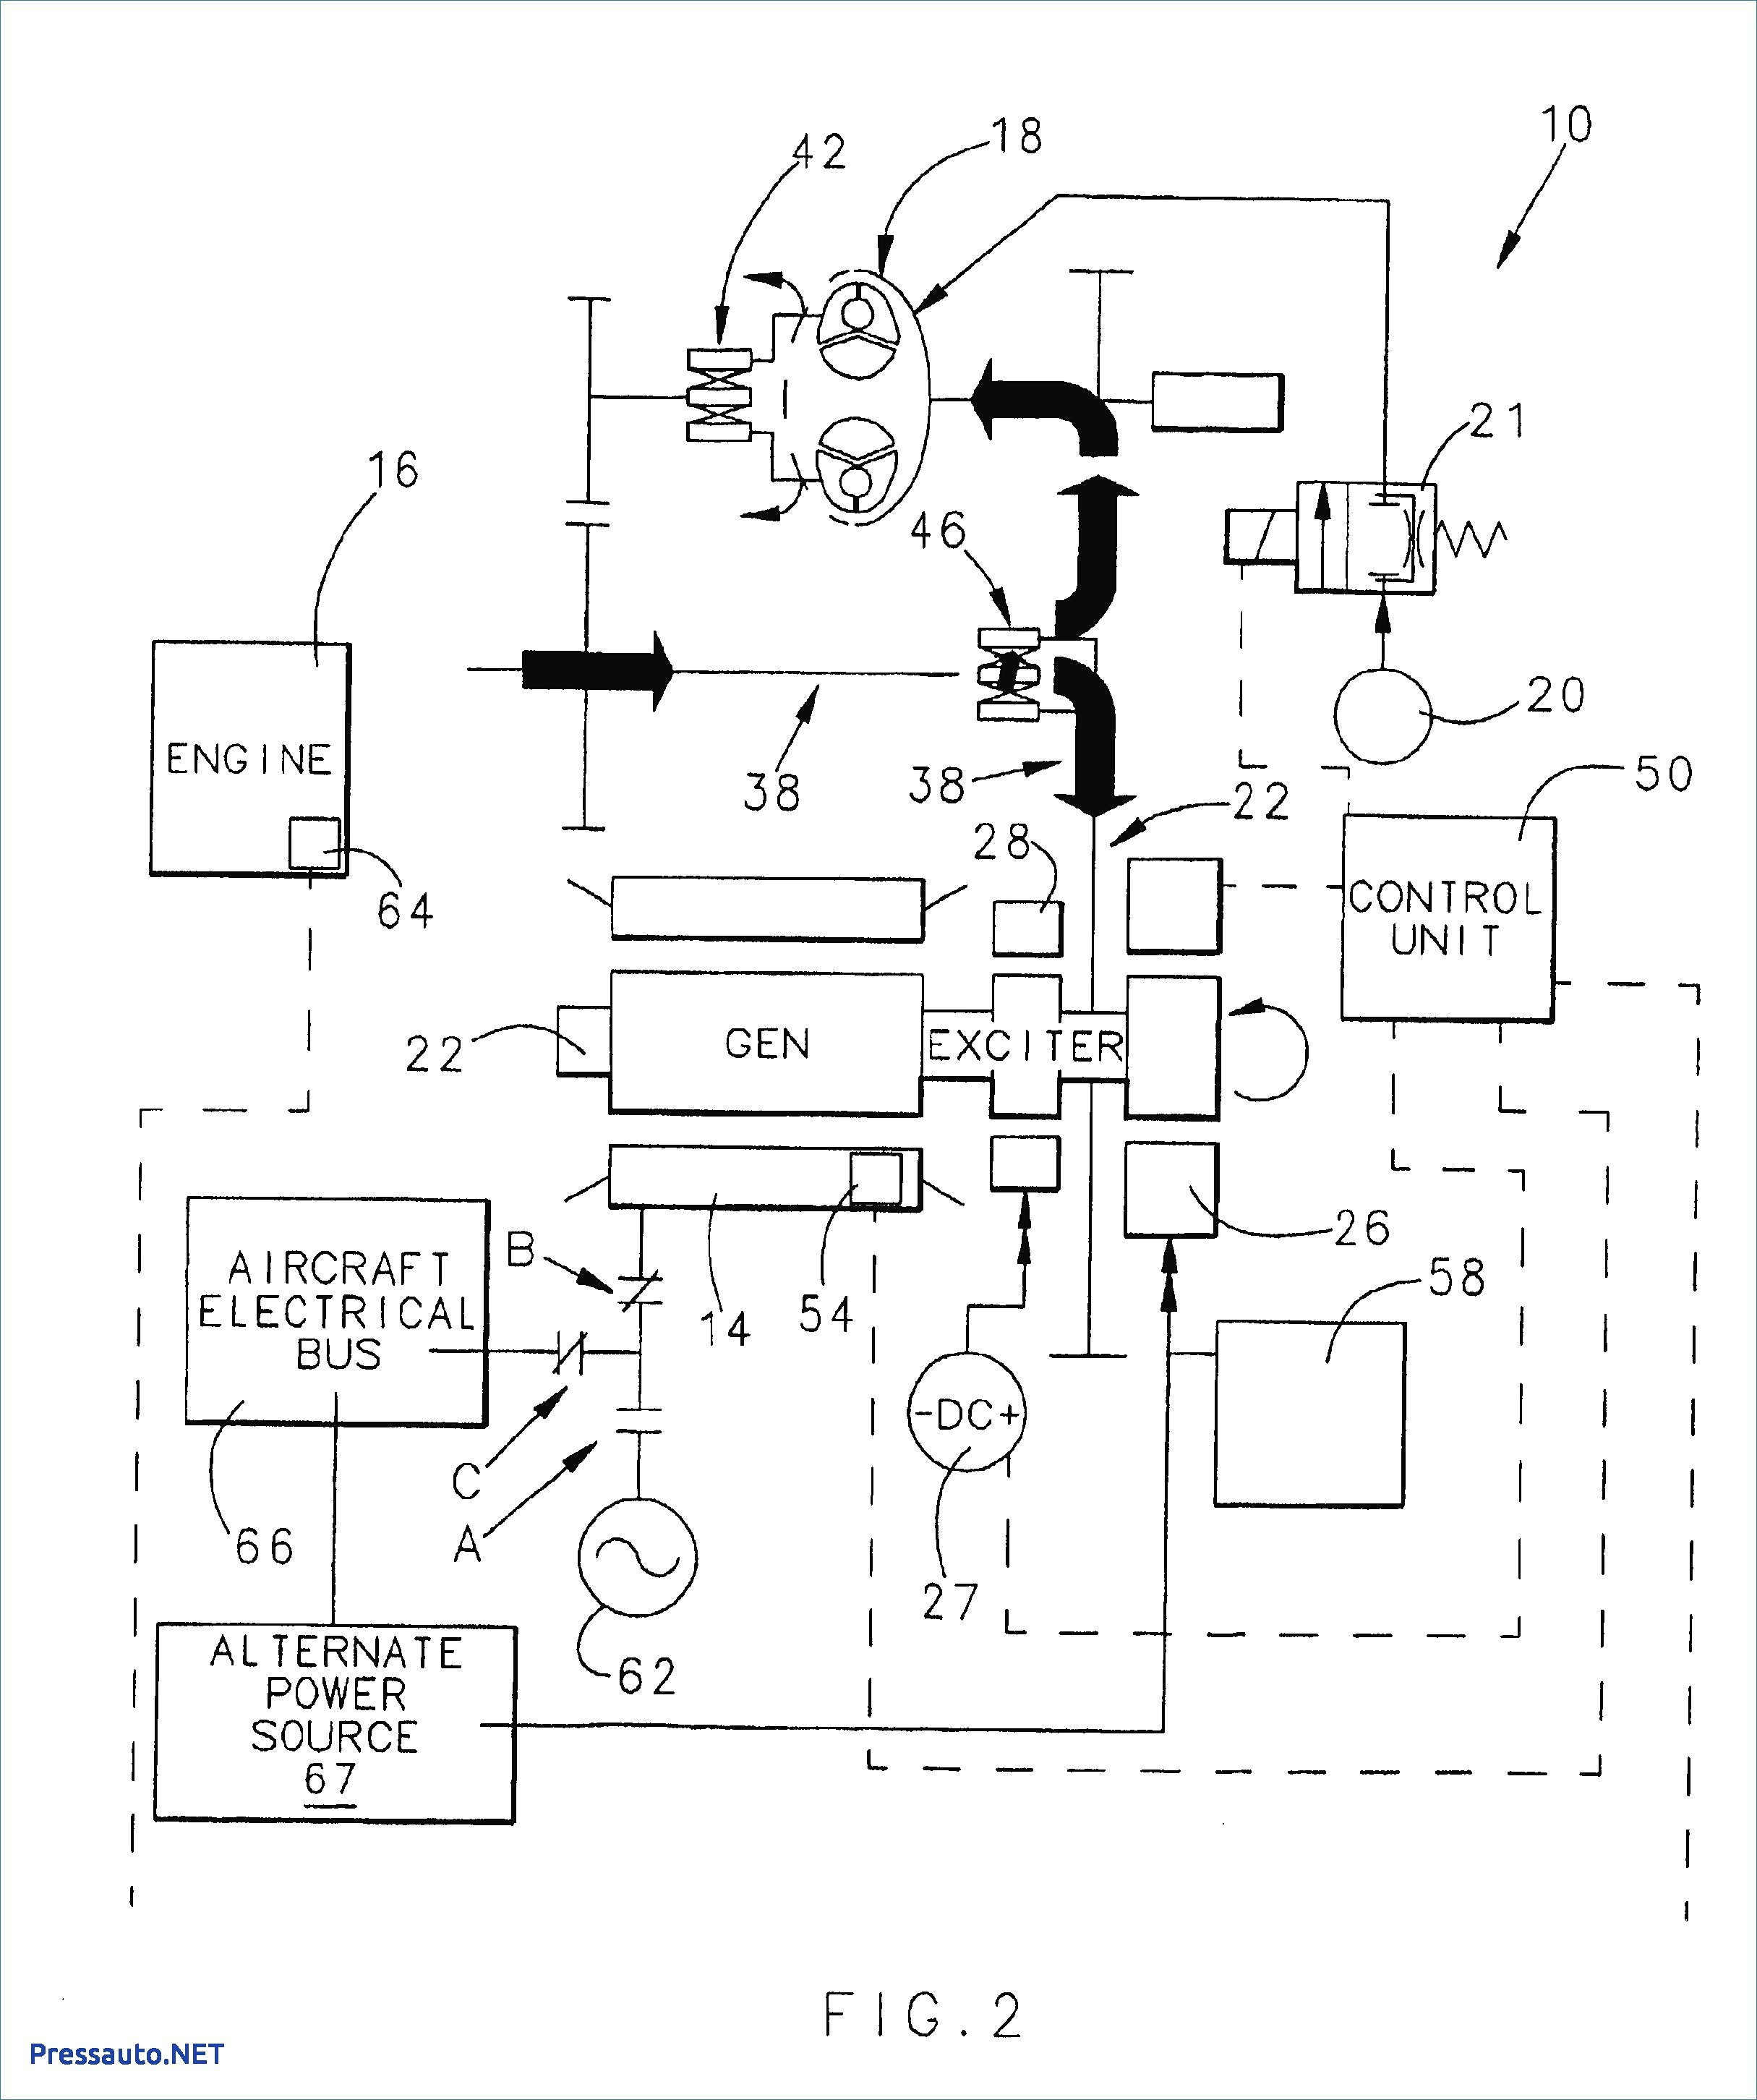 Mercedes Benz Engine Diagram 1966 Mercedes 230s Wiring Wiring Diagrams • Of Mercedes Benz Engine Diagram Mercedes Benz Parts Diagram – Diagram Car Best Car Parts and